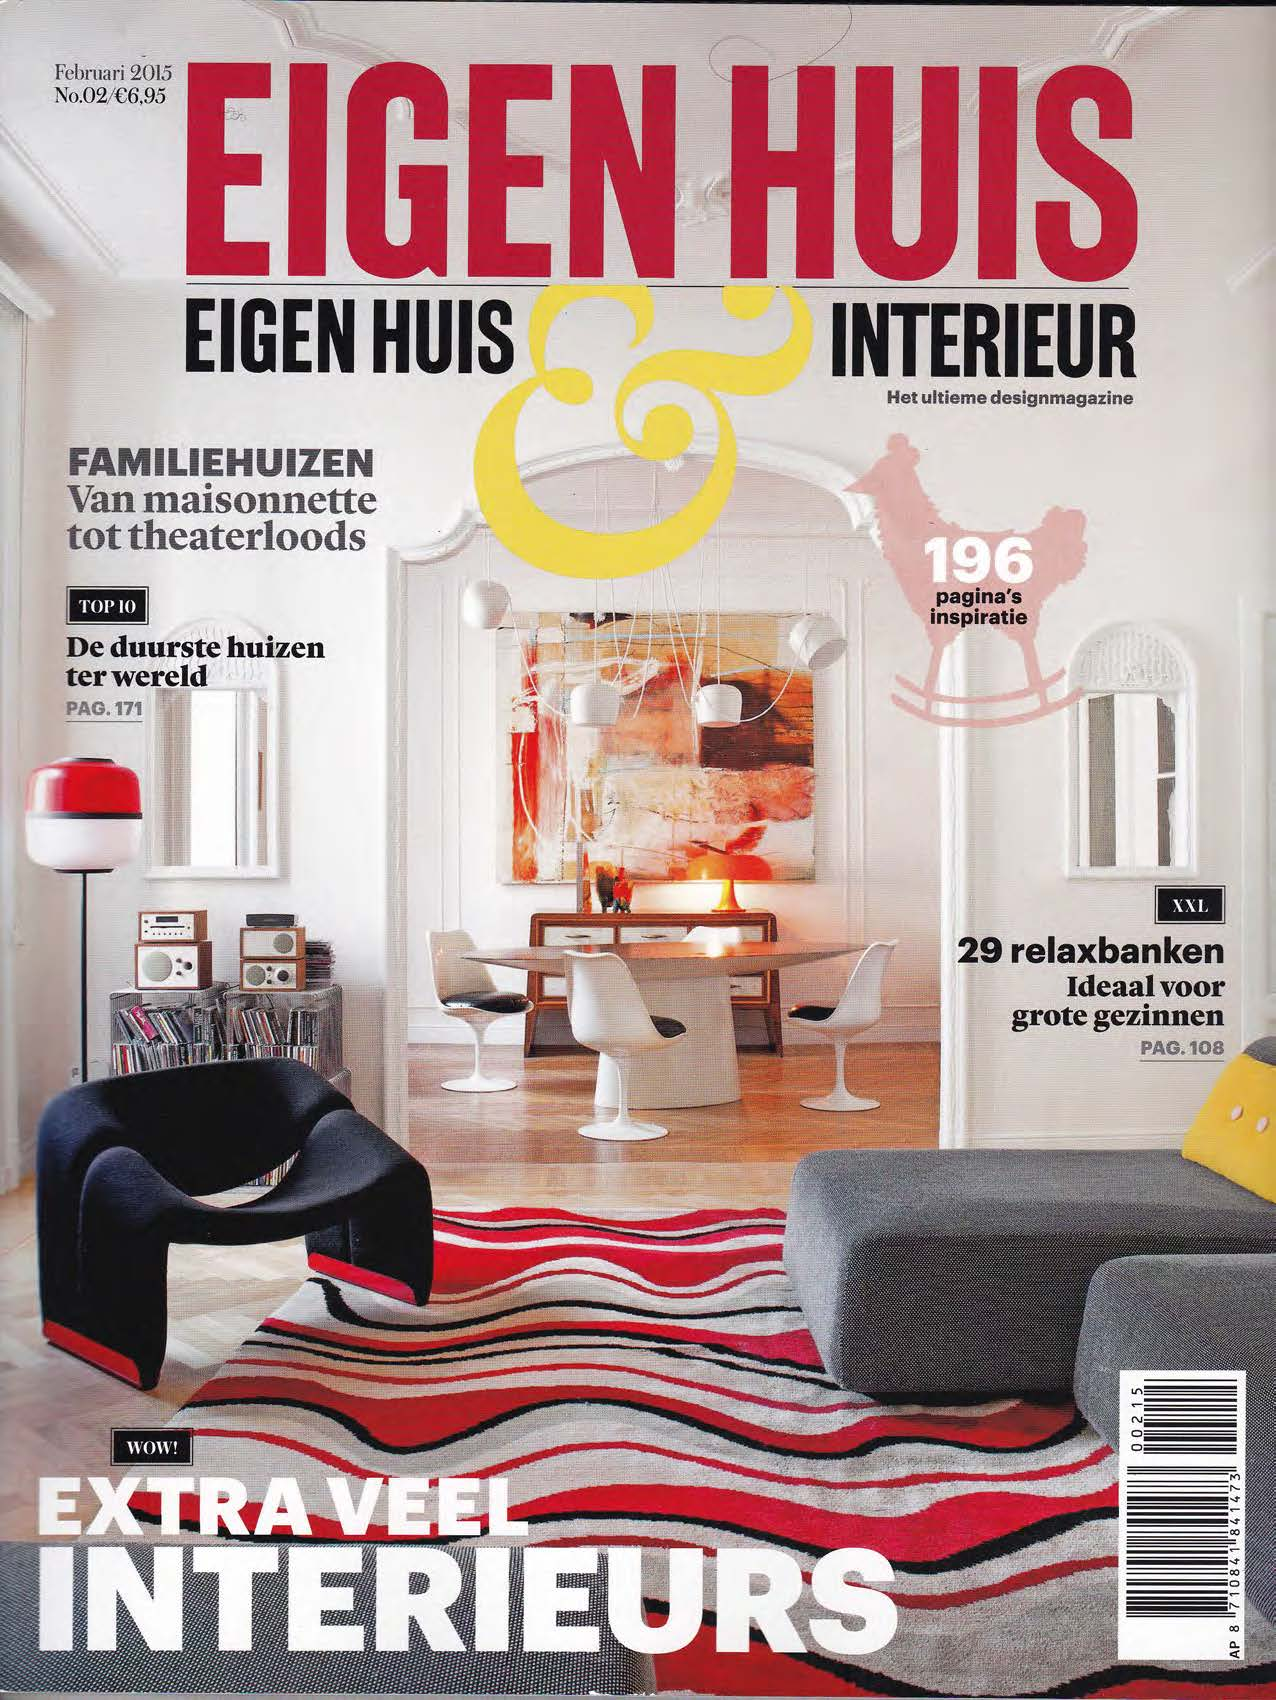 Suite wood eigen huis interieur feb 2015 for Eigen huis en interieur abonnement